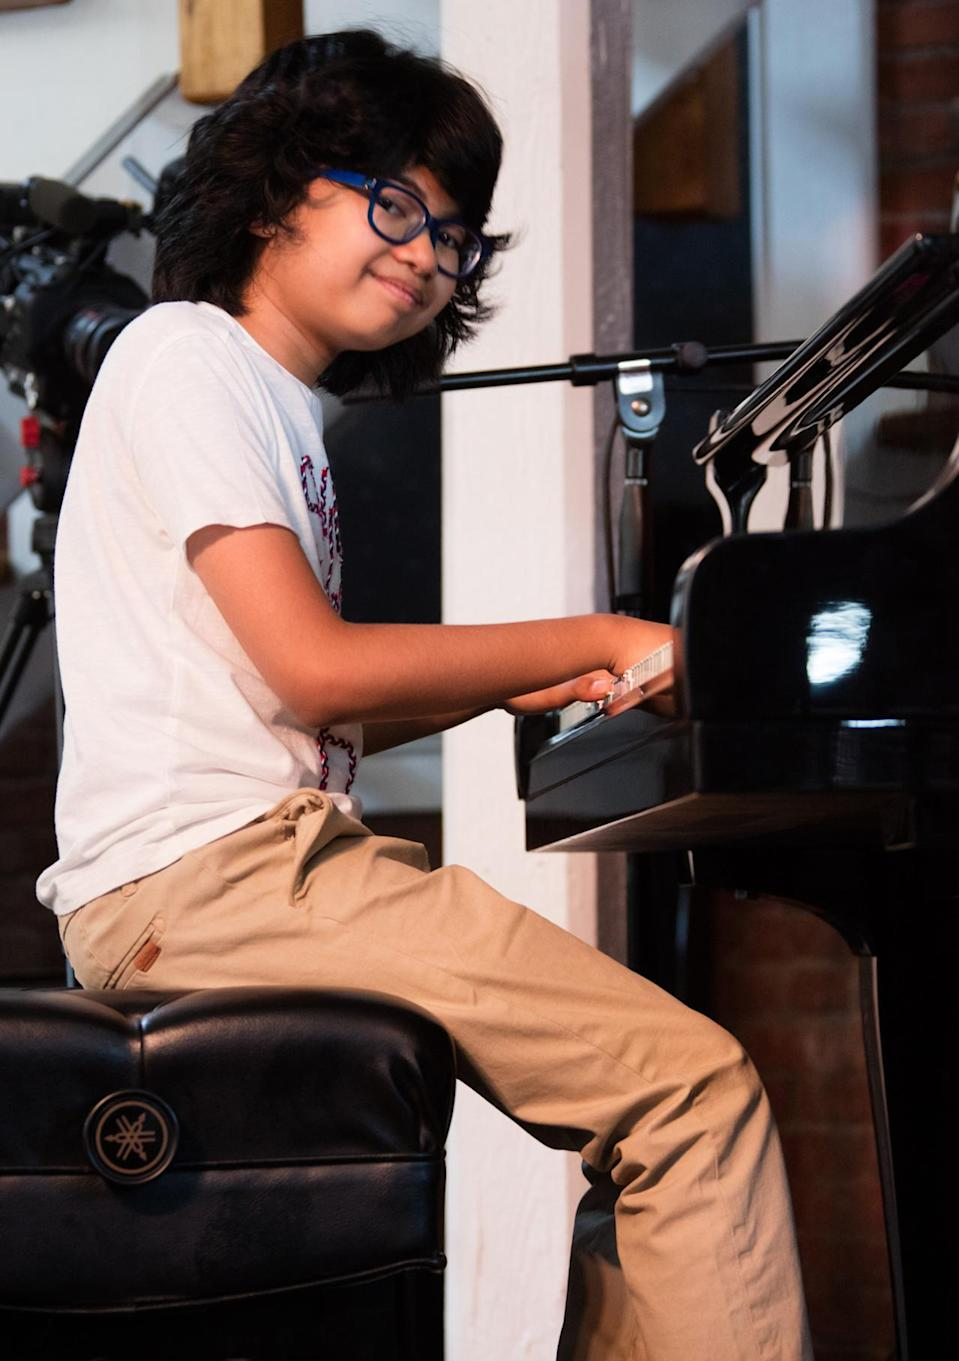 """Joey Alexander may become the youngest individual artist ever to win a Grammy. The piano prodigy is just 12 years old. Alexander has two chances to win. He's nominated for Best Jazz Instrumental Album for My Favorite Things and Best Improvised Jazz Solo for """"Giant Steps,"""" a track from the album. Odds of this happening: Good. Everybody loves a precocious kid. Note: The current record-holder as the youngest individual artist to win a Grammy is LeAnn Rimes, who was 14 ½ when she first won."""